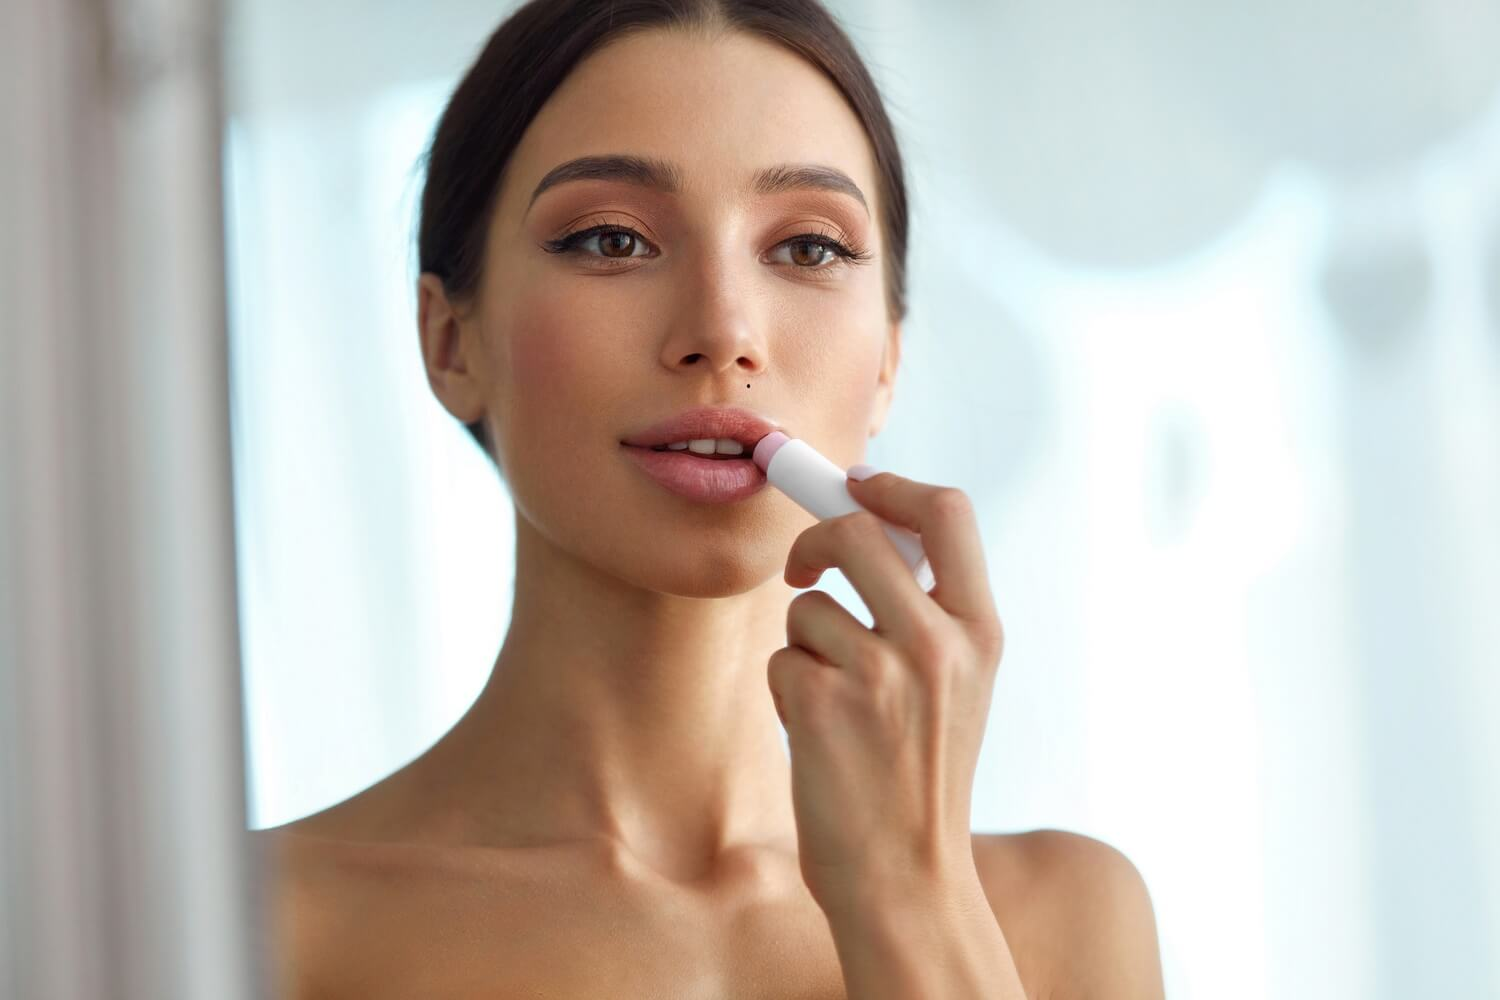 Here's how to care for your lips in winter.